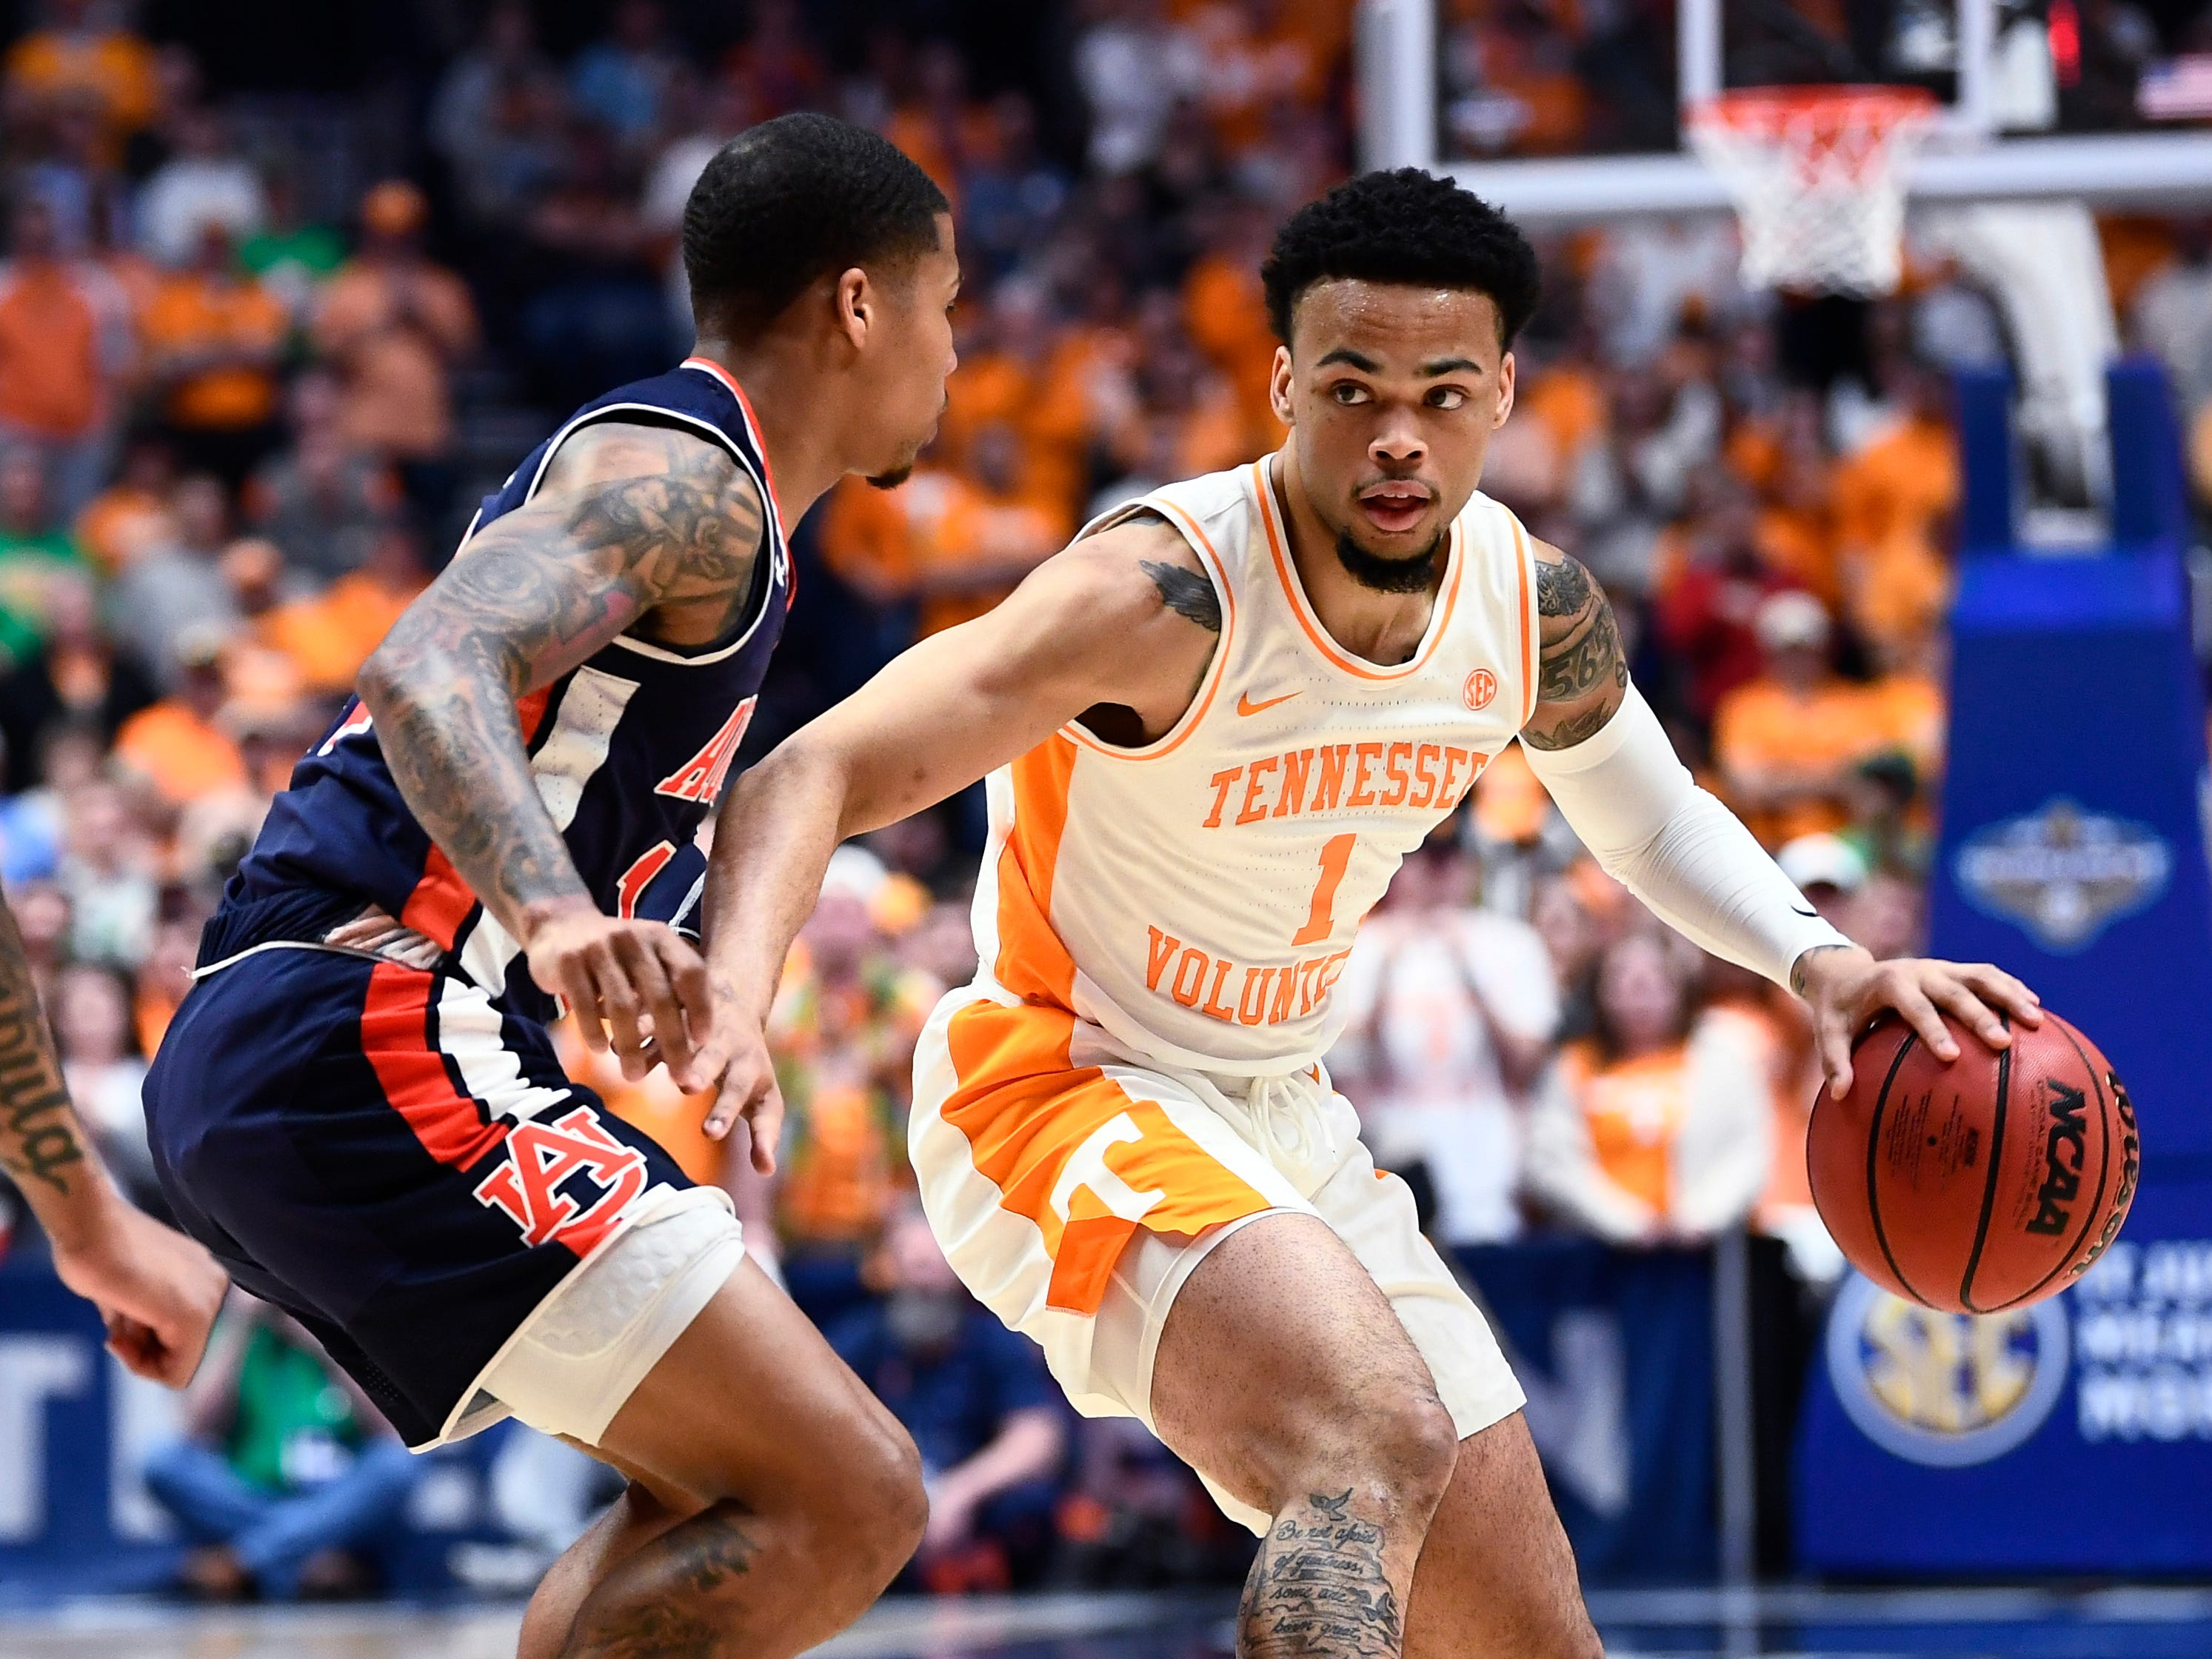 Tennessee guard Lamonte Turner (1) moves the ball defended by Auburn guard J'Von McCormick (12) during the first half of the SEC Men's Basketball Tournament championship game at Bridgestone Arena in Nashville, Tenn., Sunday, March 17, 2019.